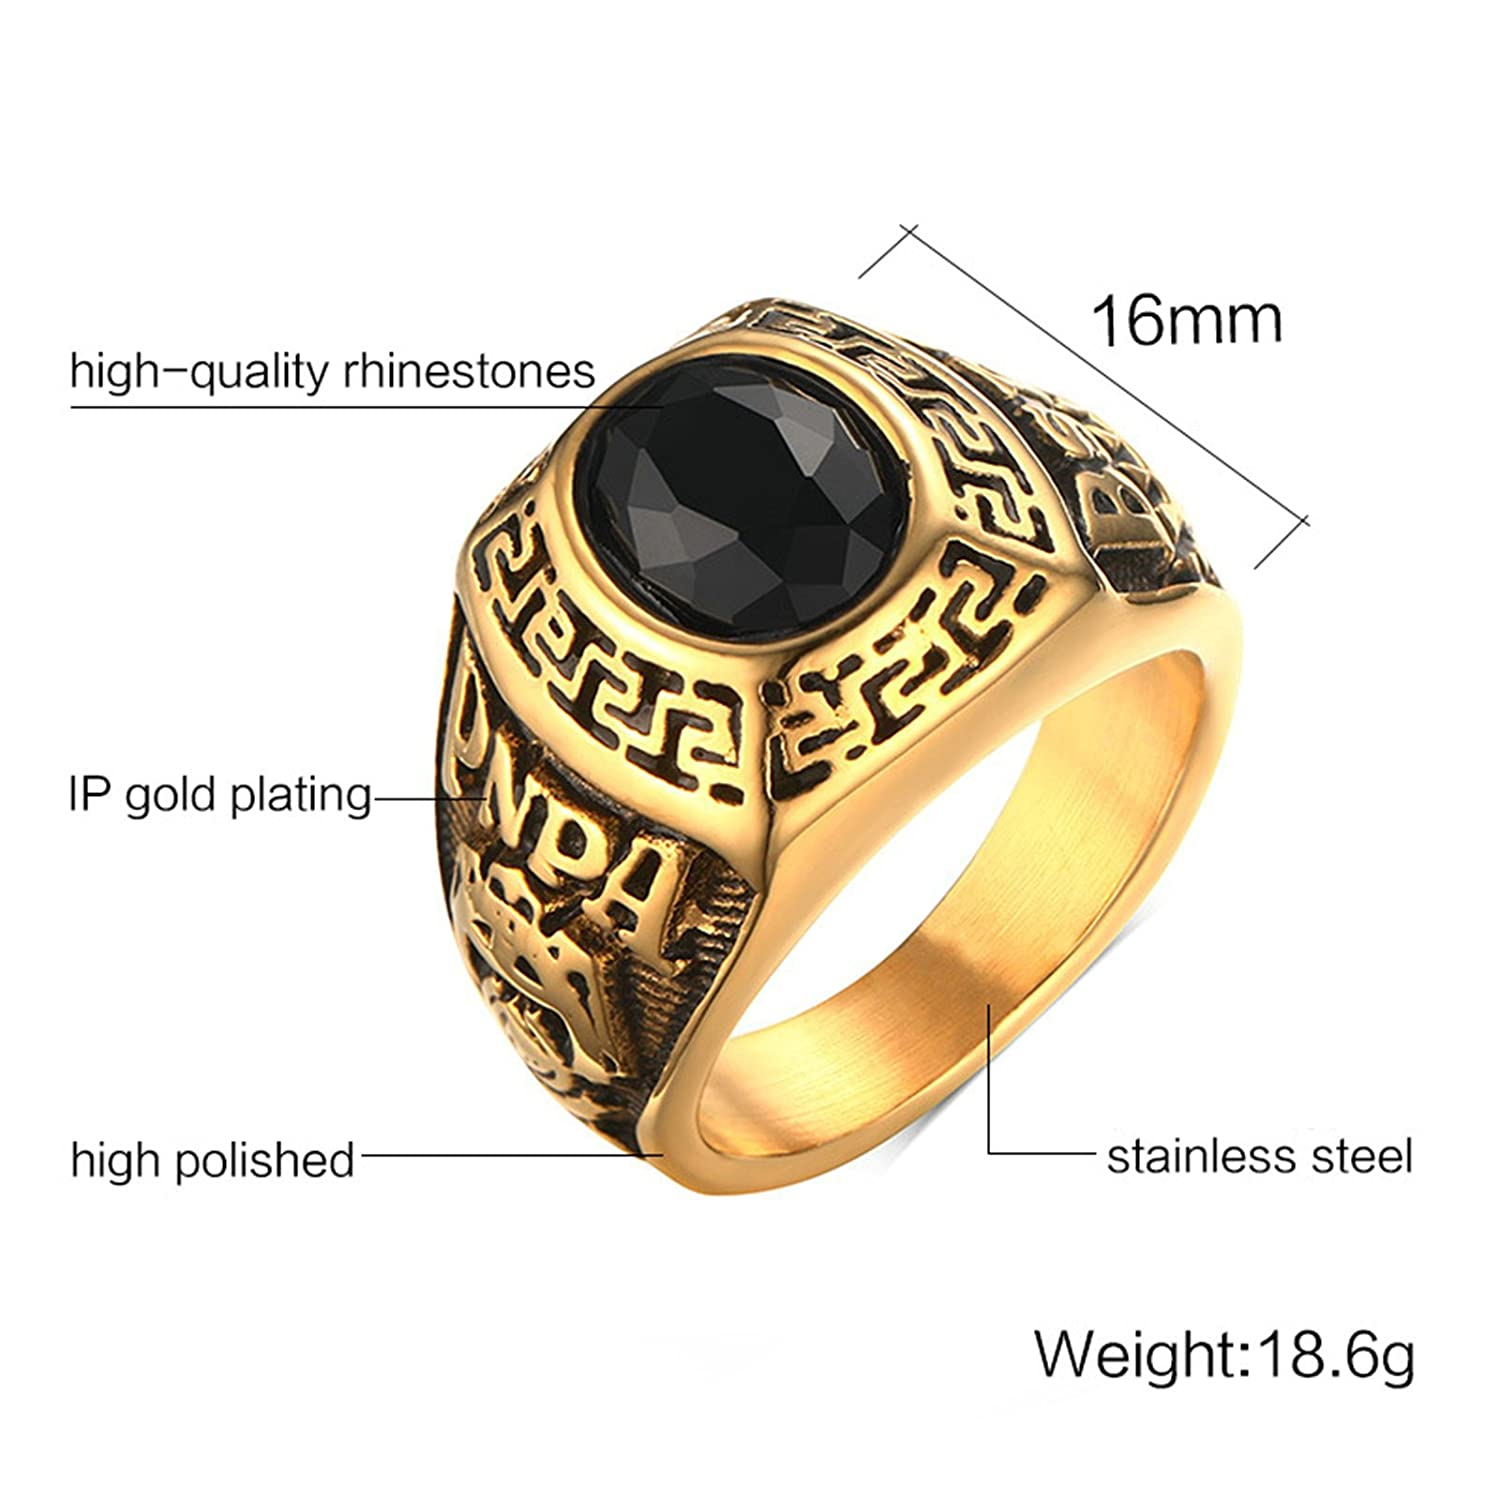 Aooaz Men's Stainless Steel Ring Gold Plated Round Black Stone Royal Pattern Retro Wedding Band